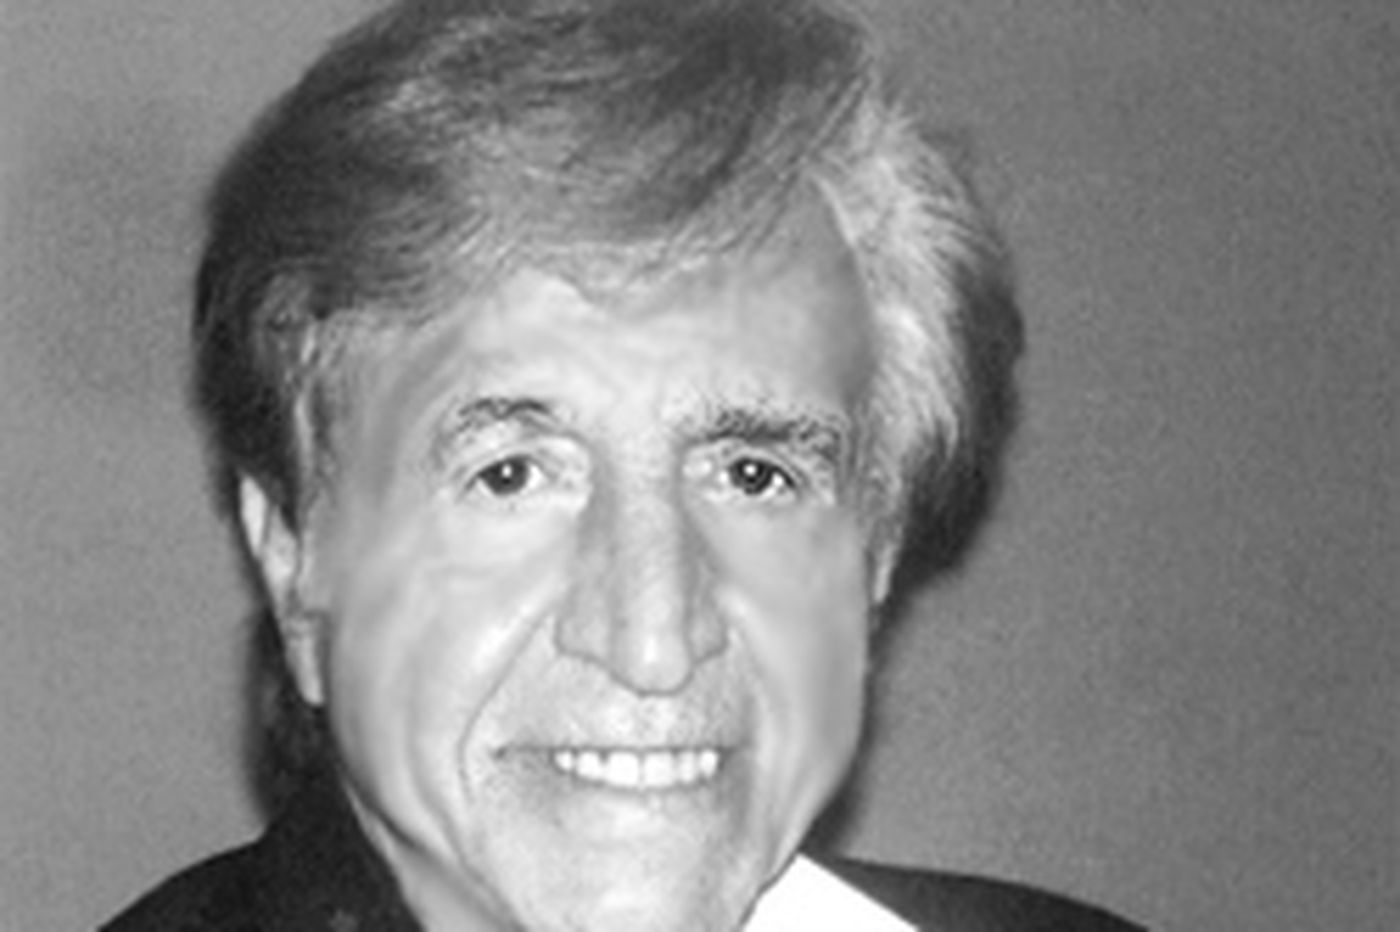 Arnold 'Giant Gene' Rubin, 78, Philly radio DJ and music promoter